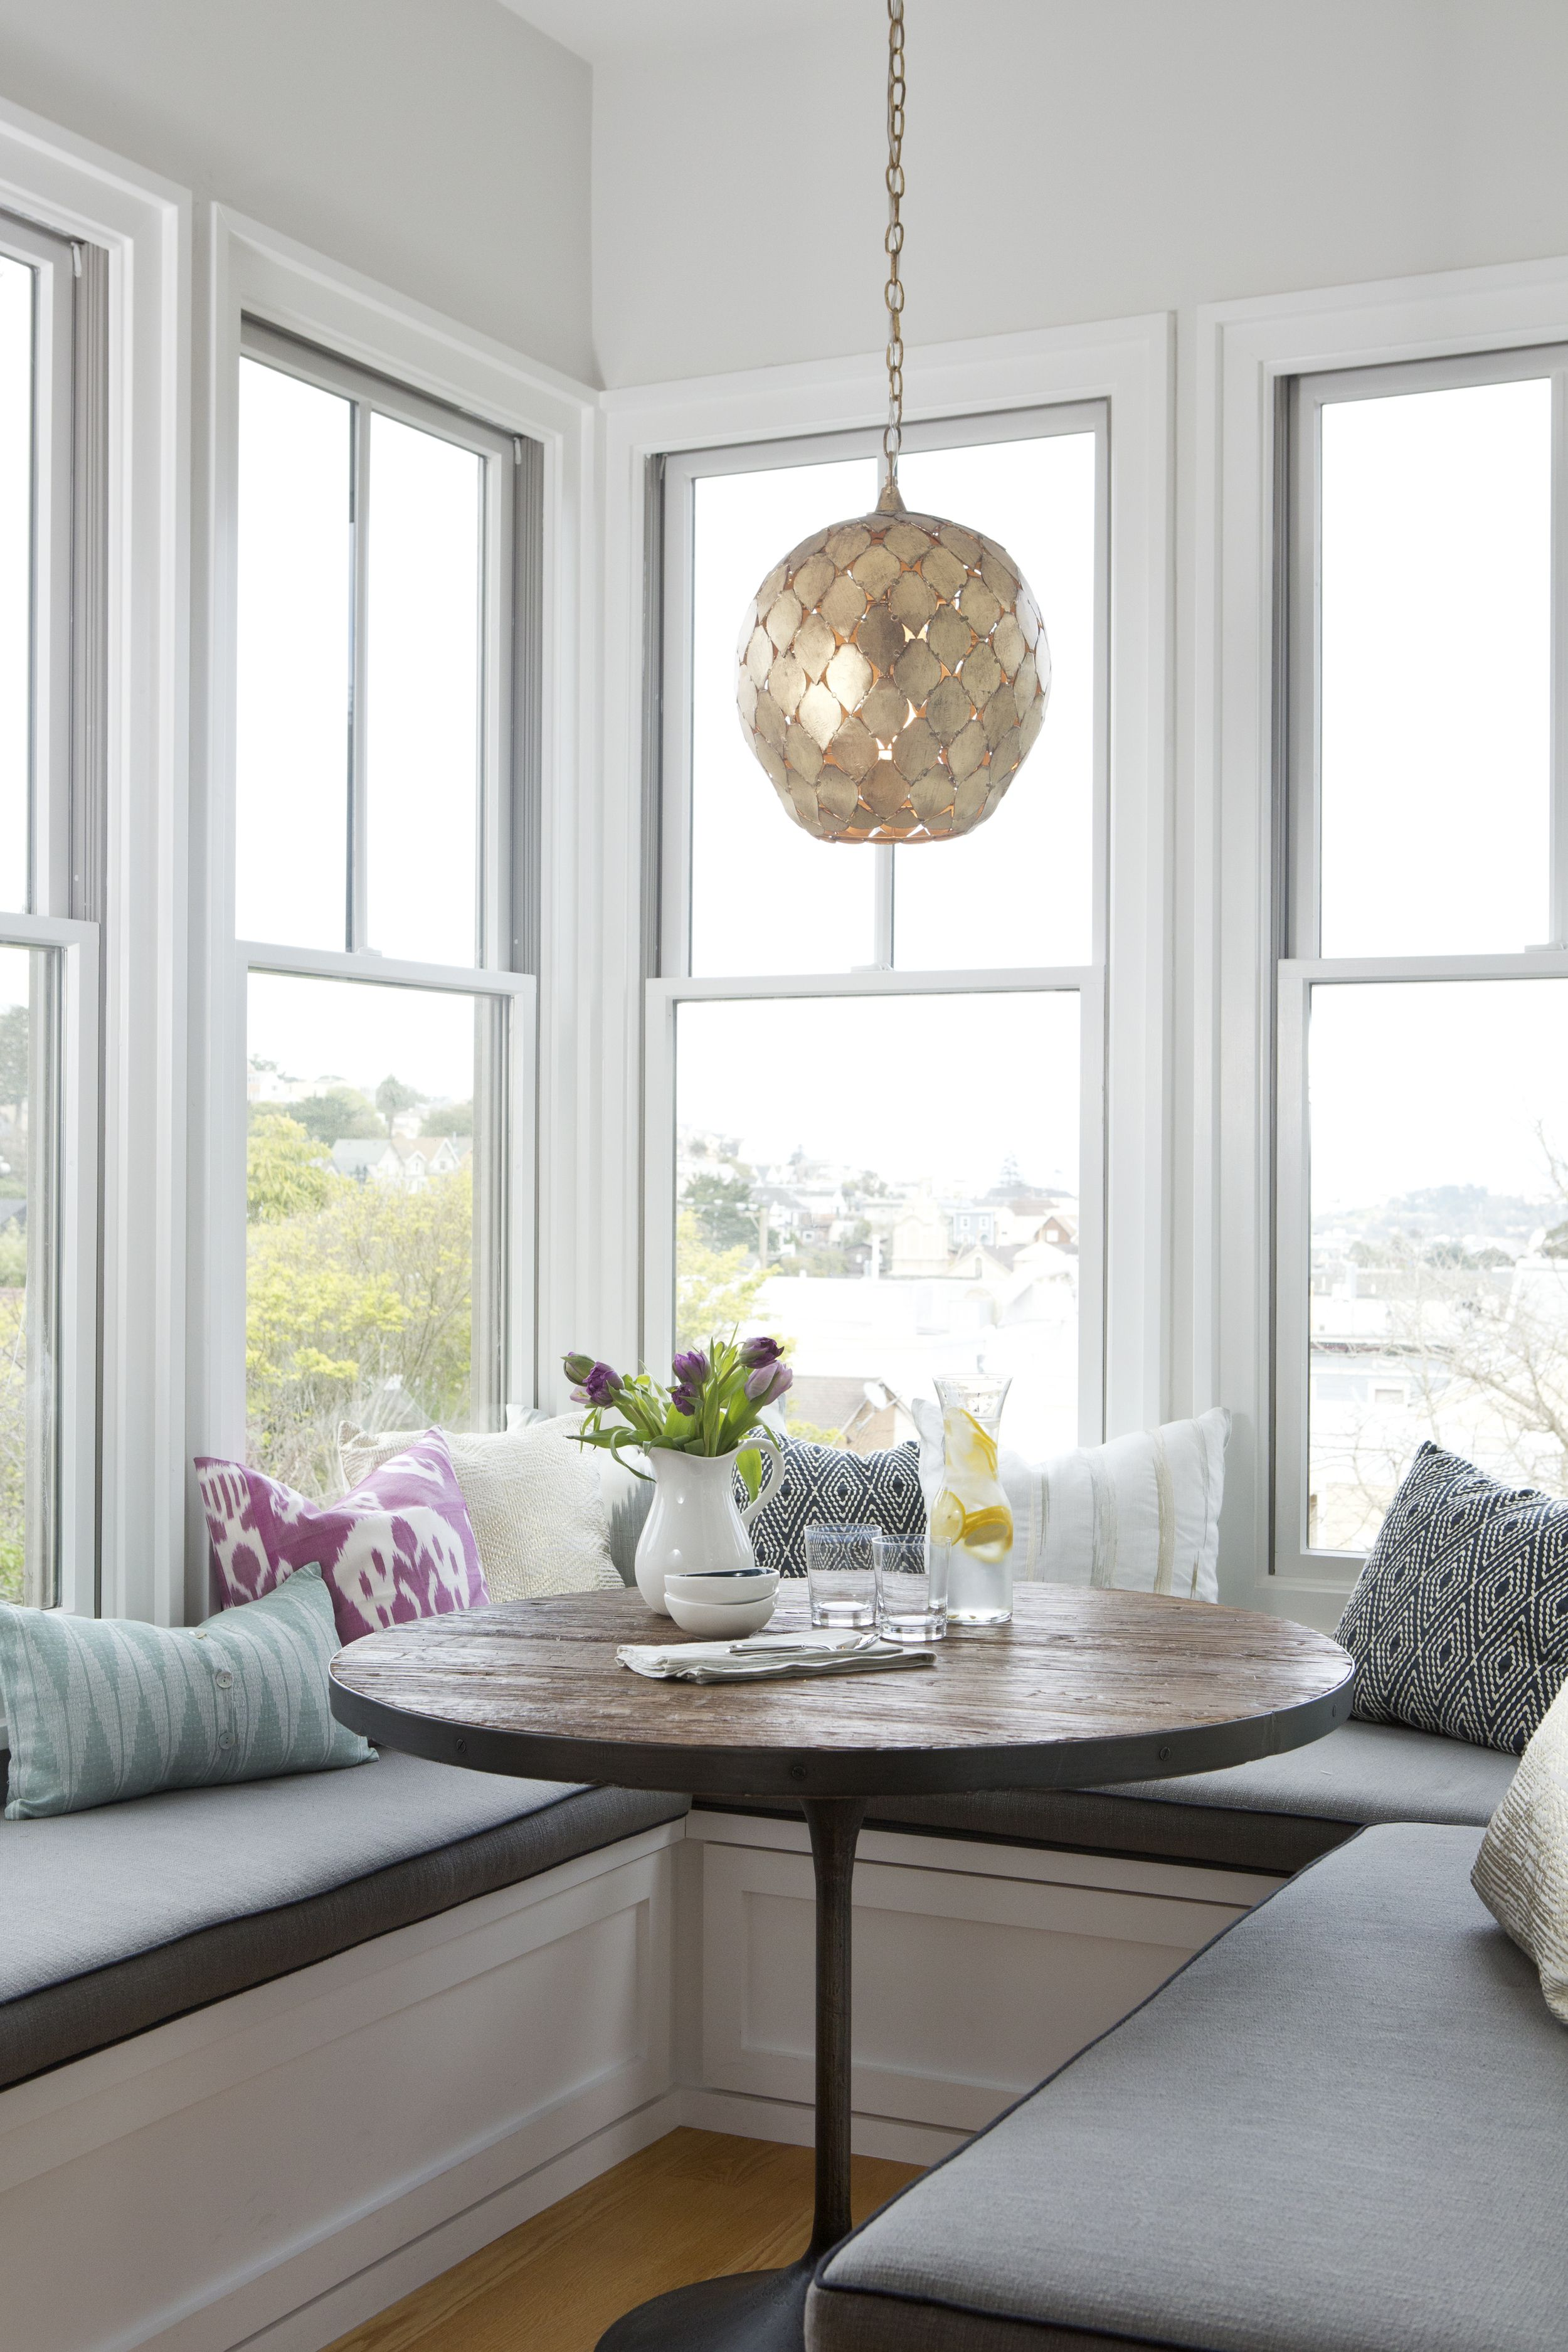 Noe Valley Townhouse Dining Nook Home Breakfast Nook Cushions